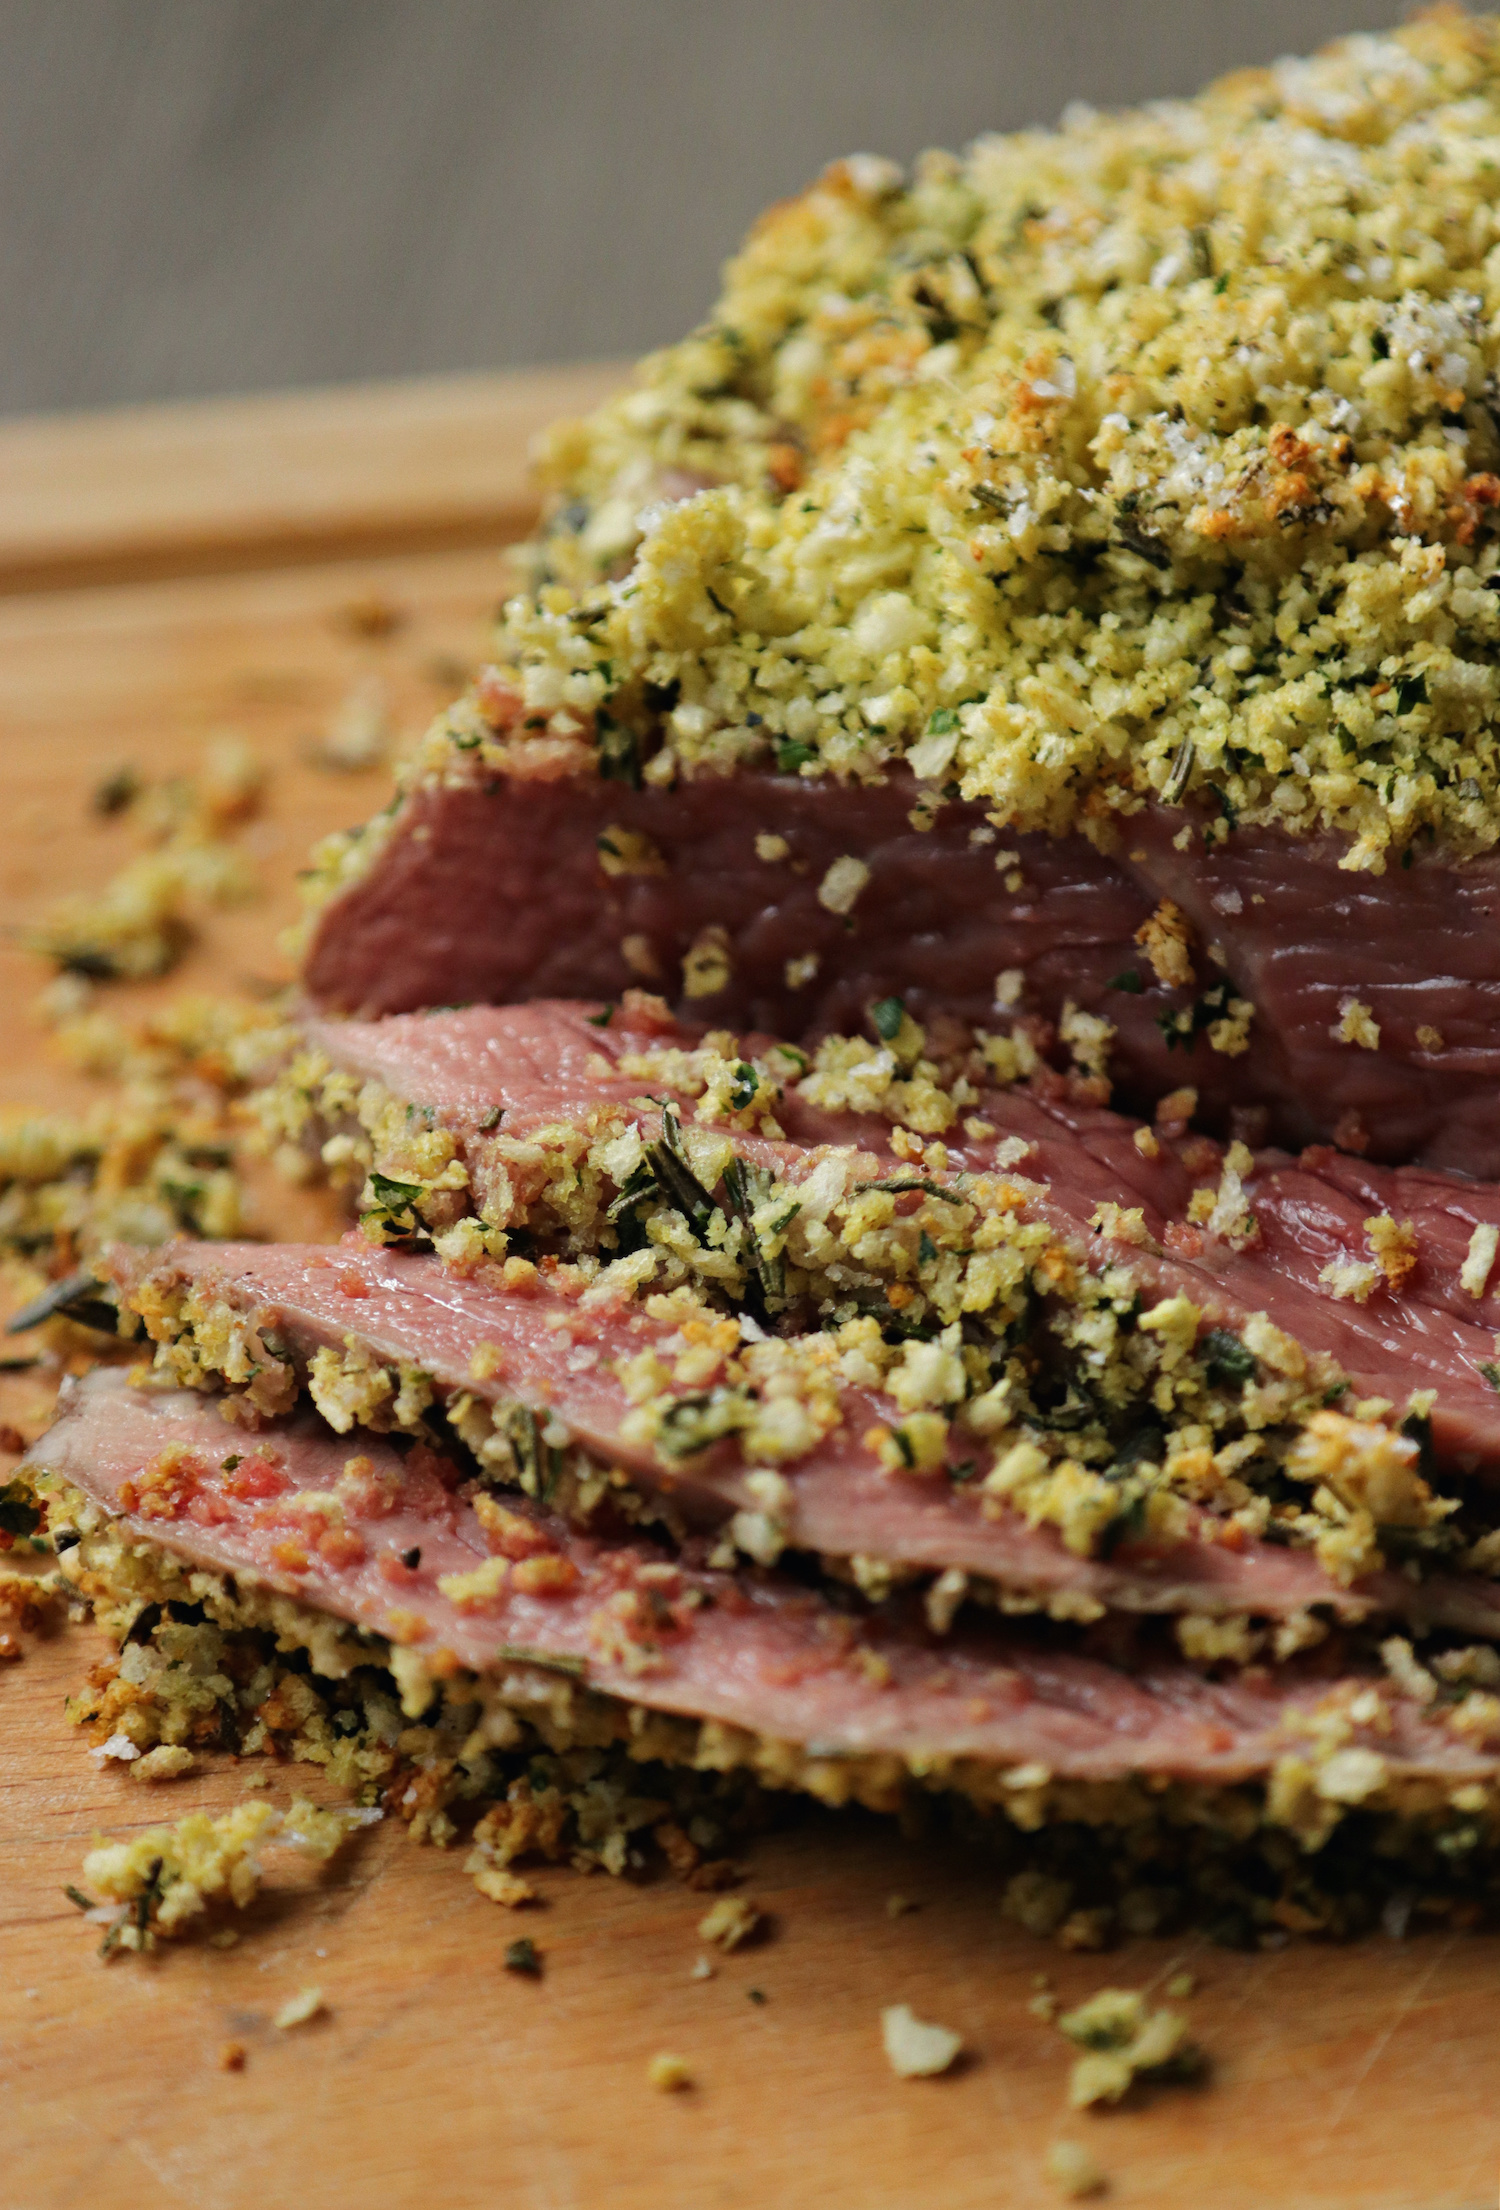 Roast Beef with herby dijon crust - MEATER probe - recipe notes - Humphrey Munson Blog